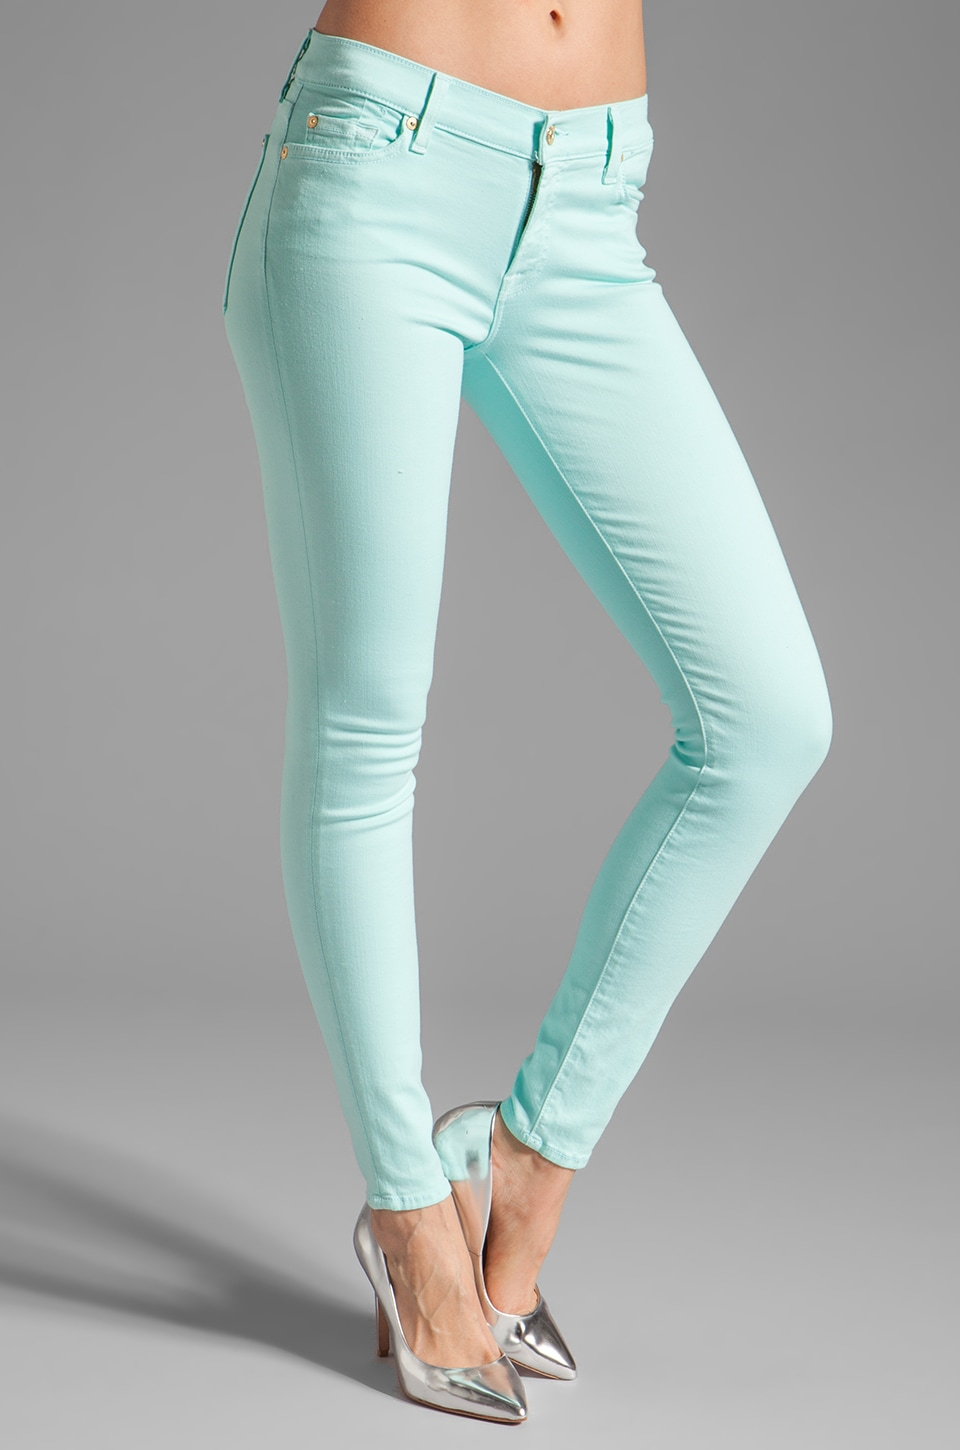 7 For All Mankind The Skinny Slim Illusion in Bright Aqua